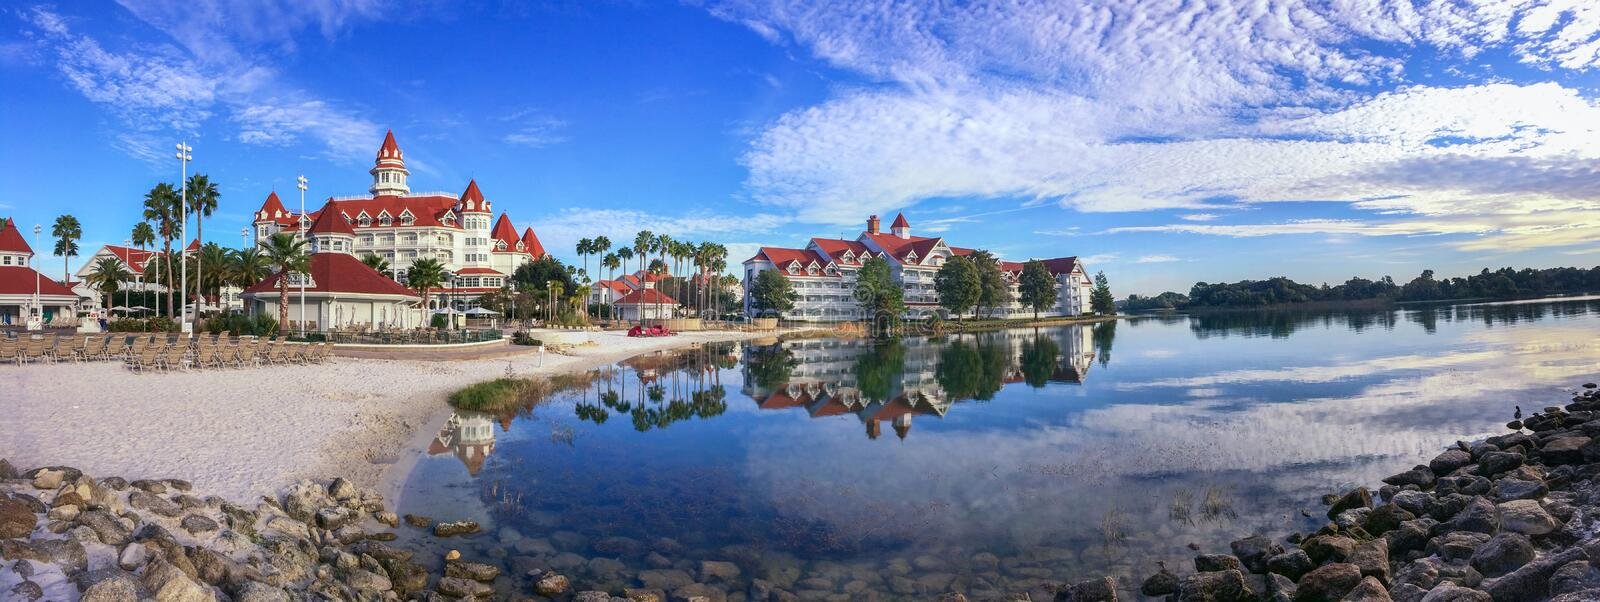 Walt Disney& x27;s Grand Floridian Resort & Spa royalty free stock photography